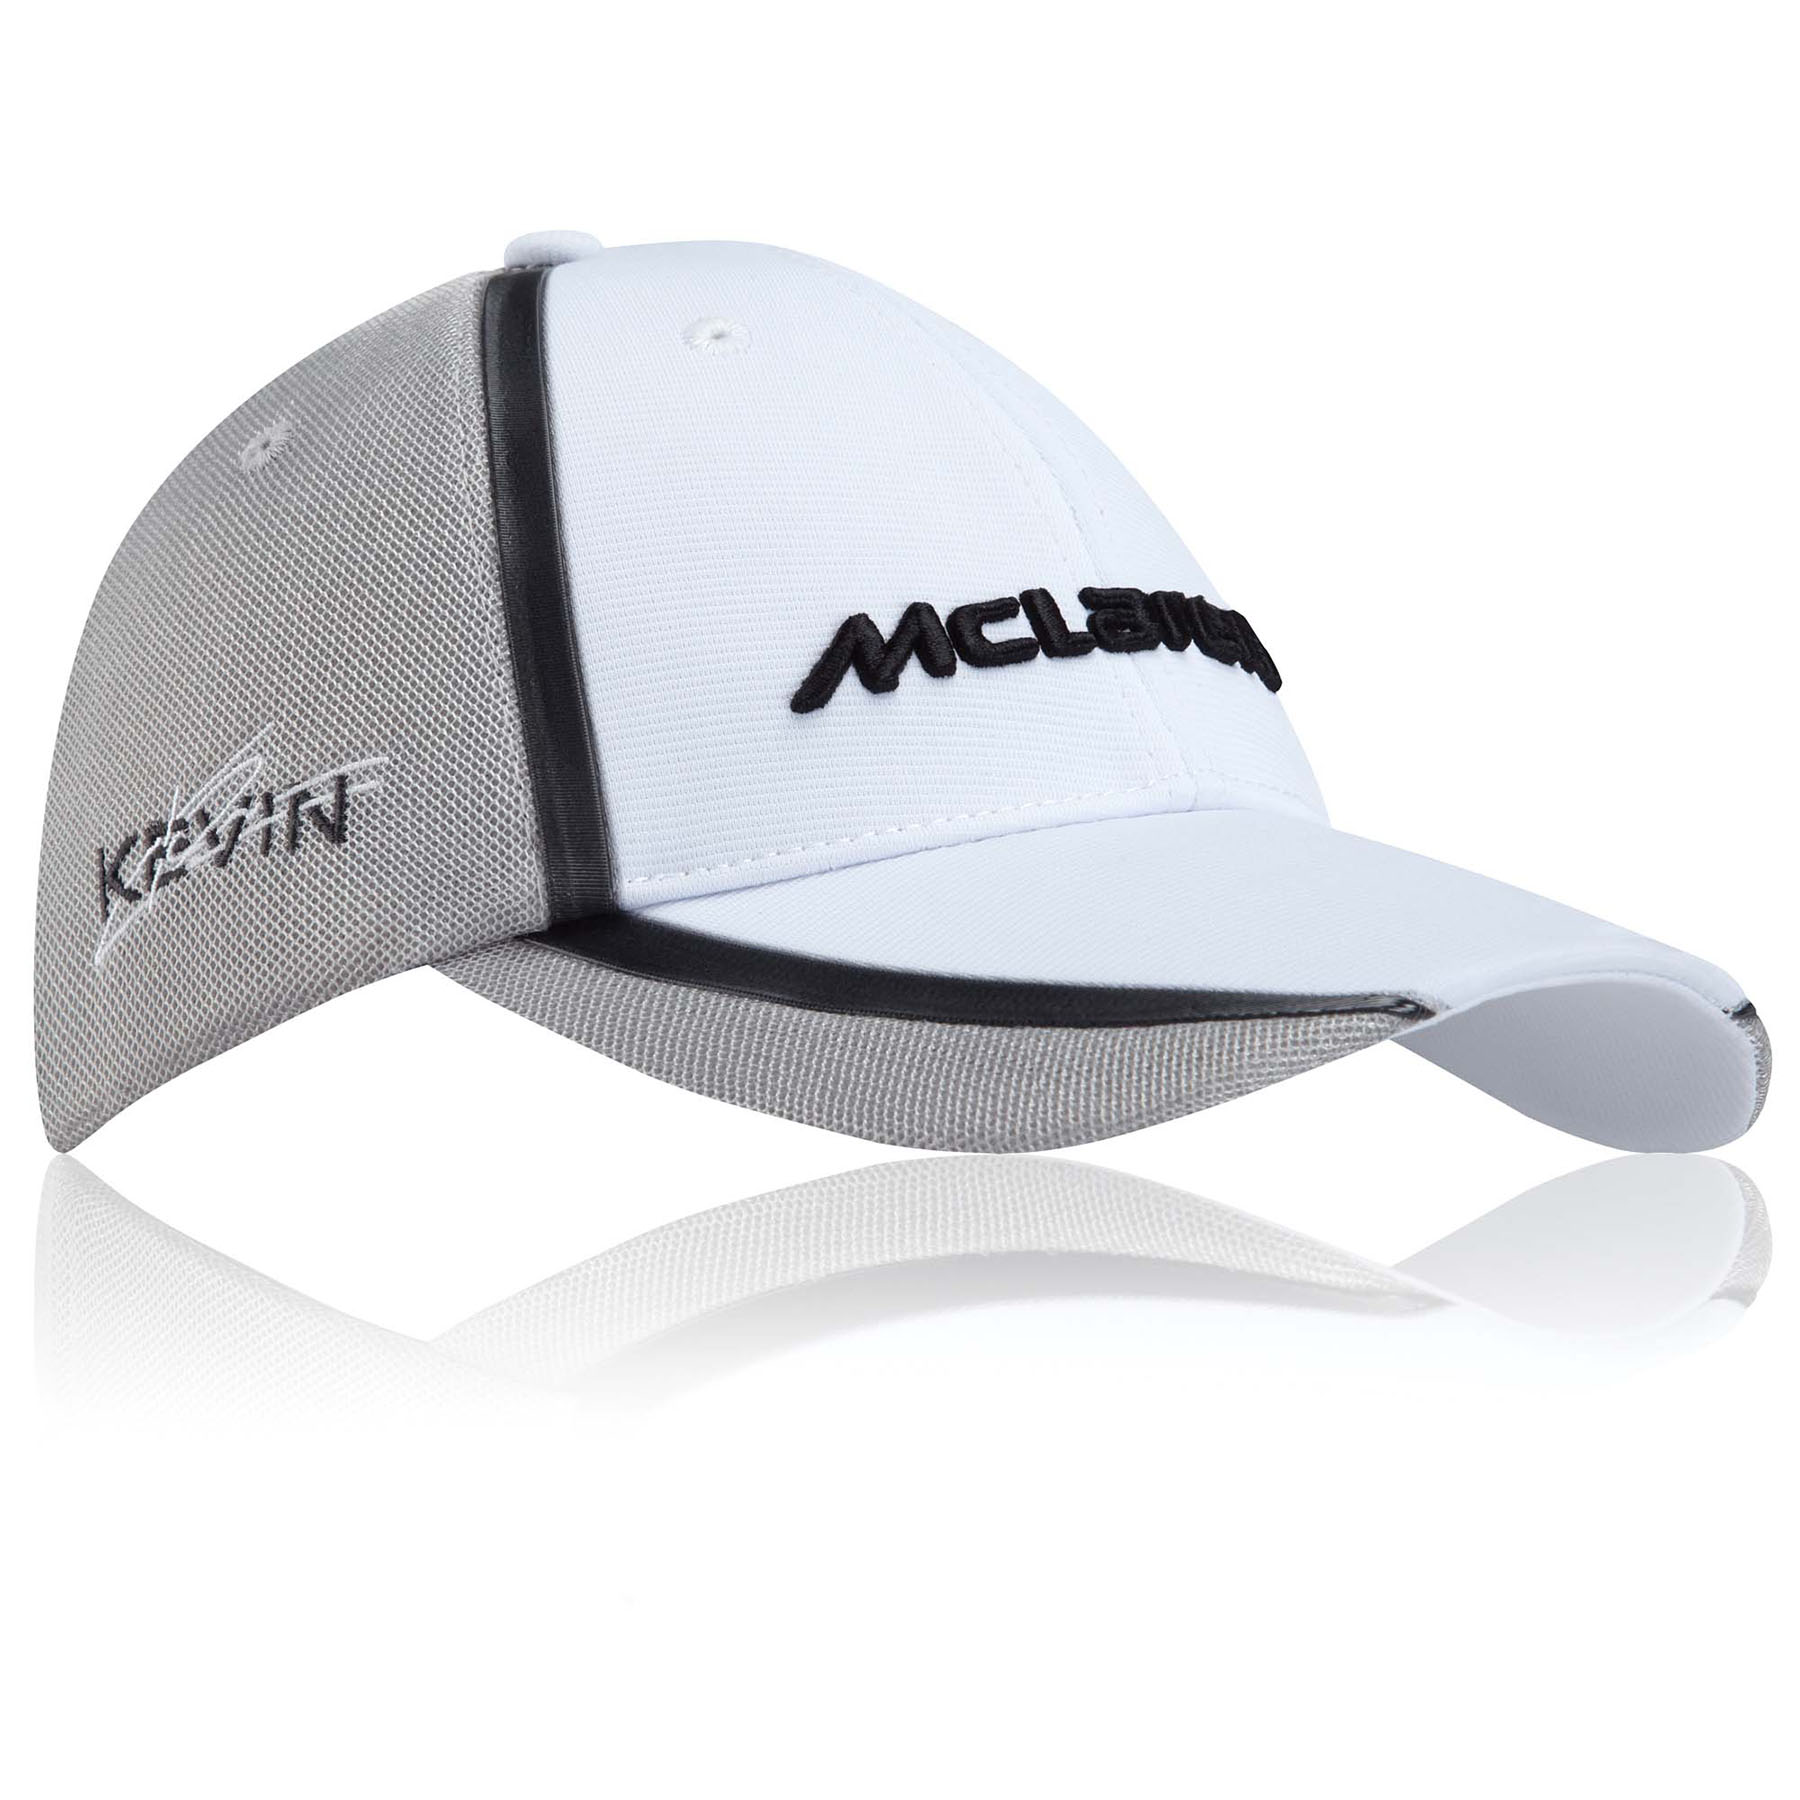 Team McLaren Magnussen Drivers Team Cap